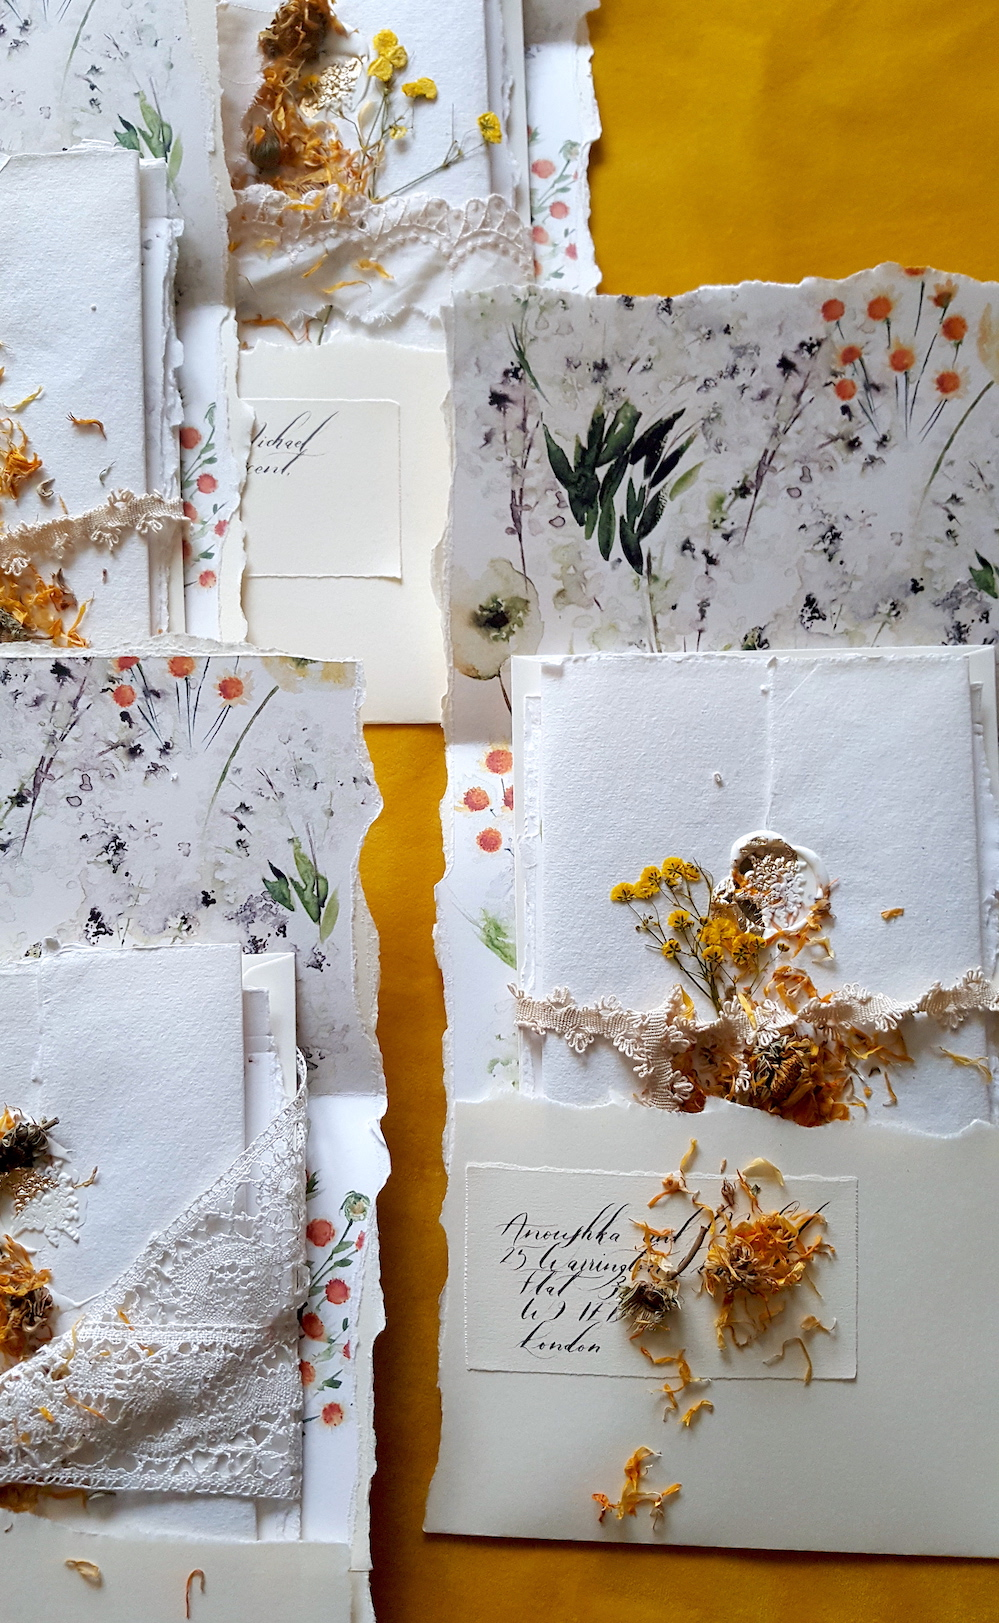 Bespoke Watercolour Wedding Invitations with the envelope open showing the lace ribbon and loose flowers inside